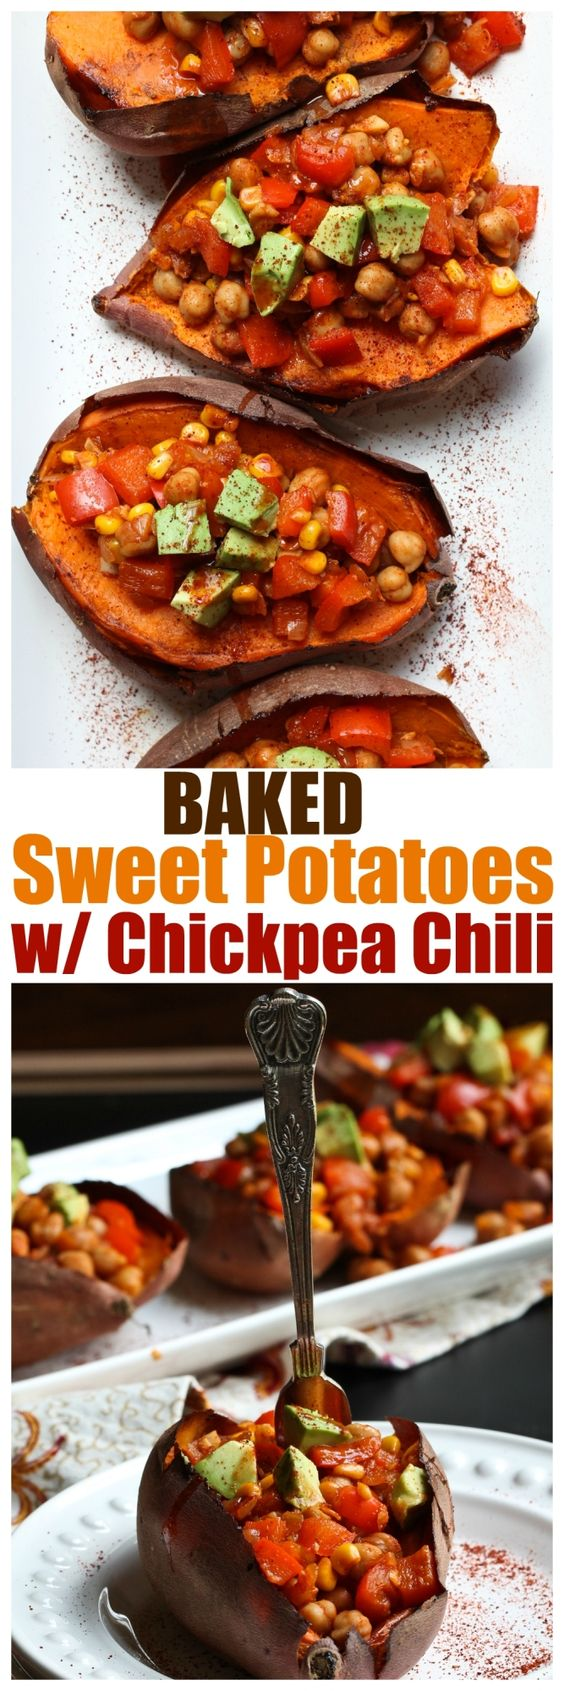 Baked Sweet Potatoes Stuffed with Chickpea Chili | Recipe | Baked ...